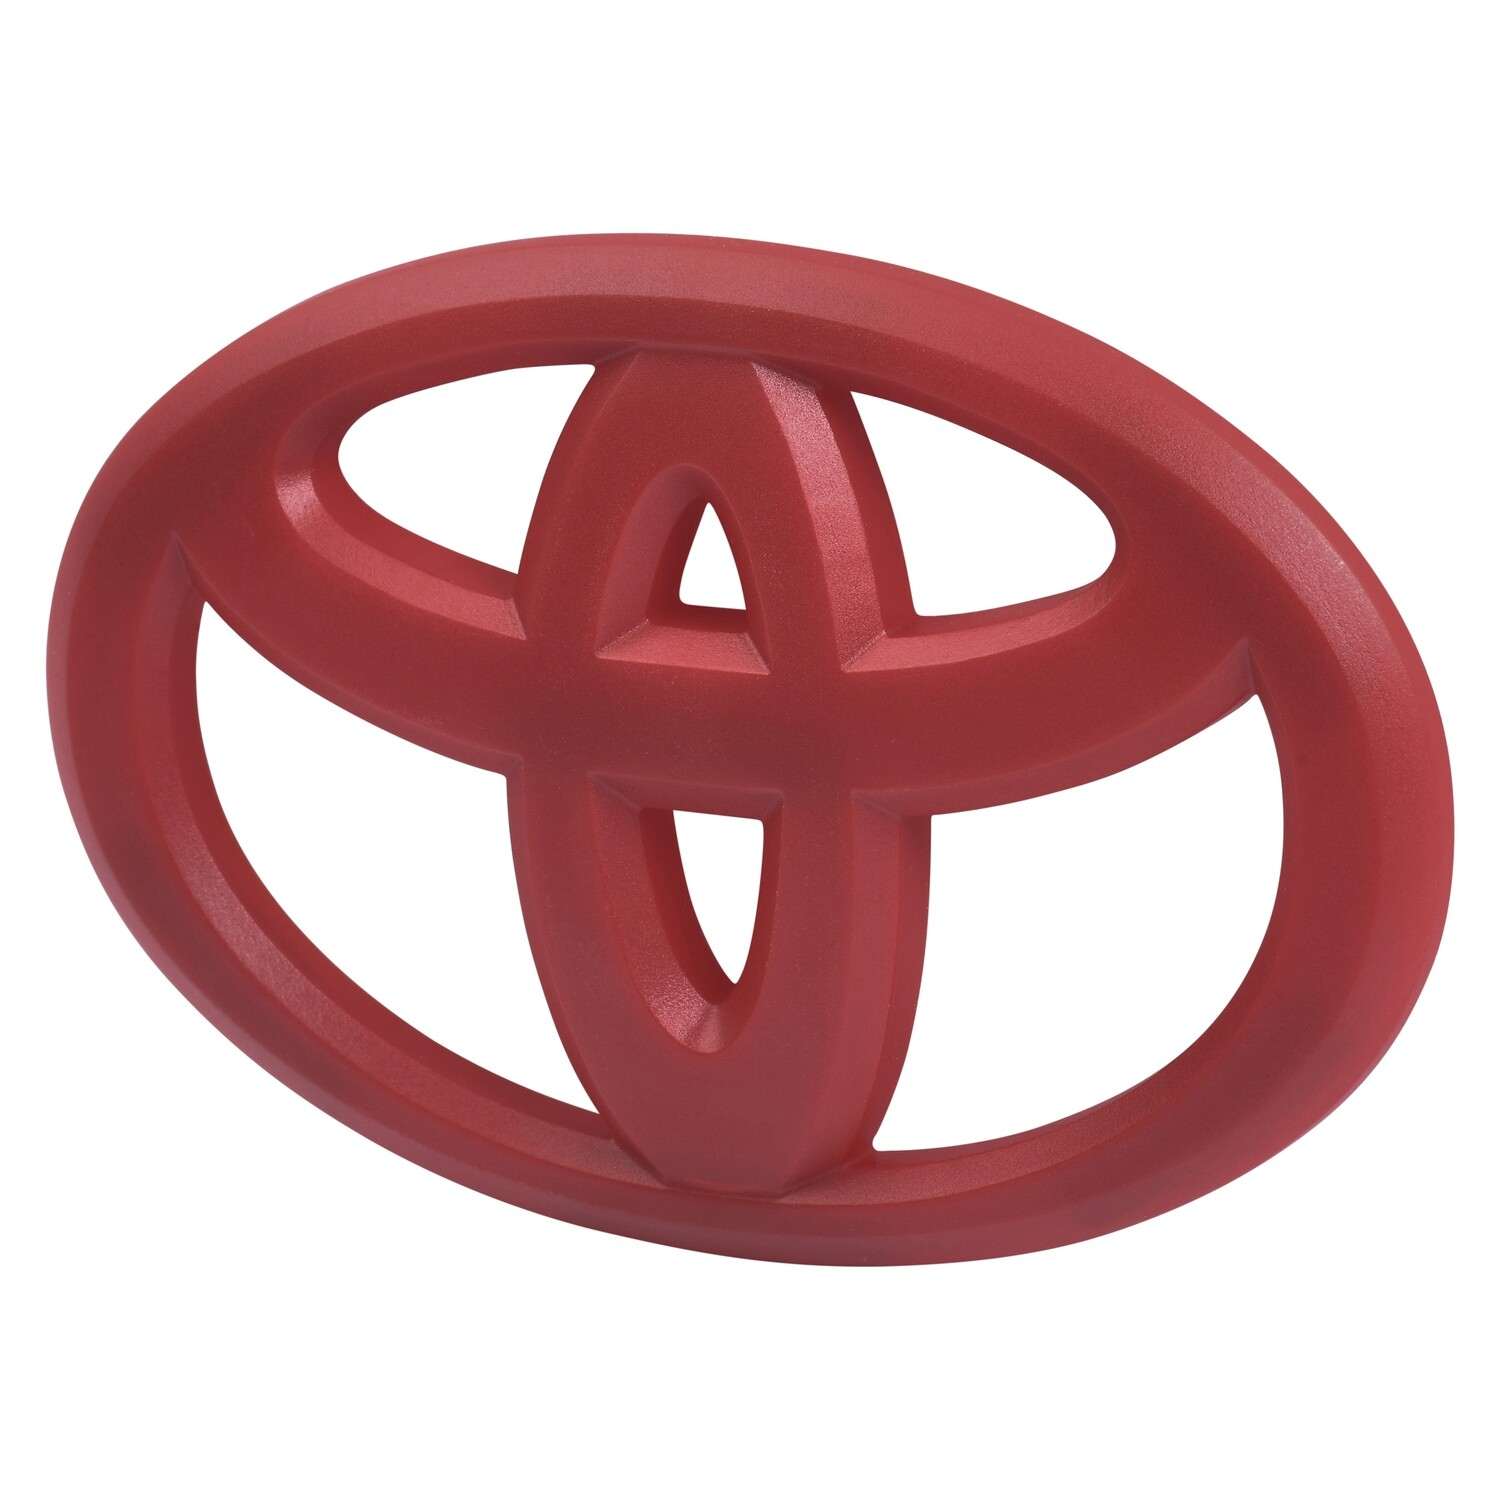 Steering Wheel Emblem Overlay (2012+ Tacoma / 2007+ Tundra / 2010+ 4Runner) - RED